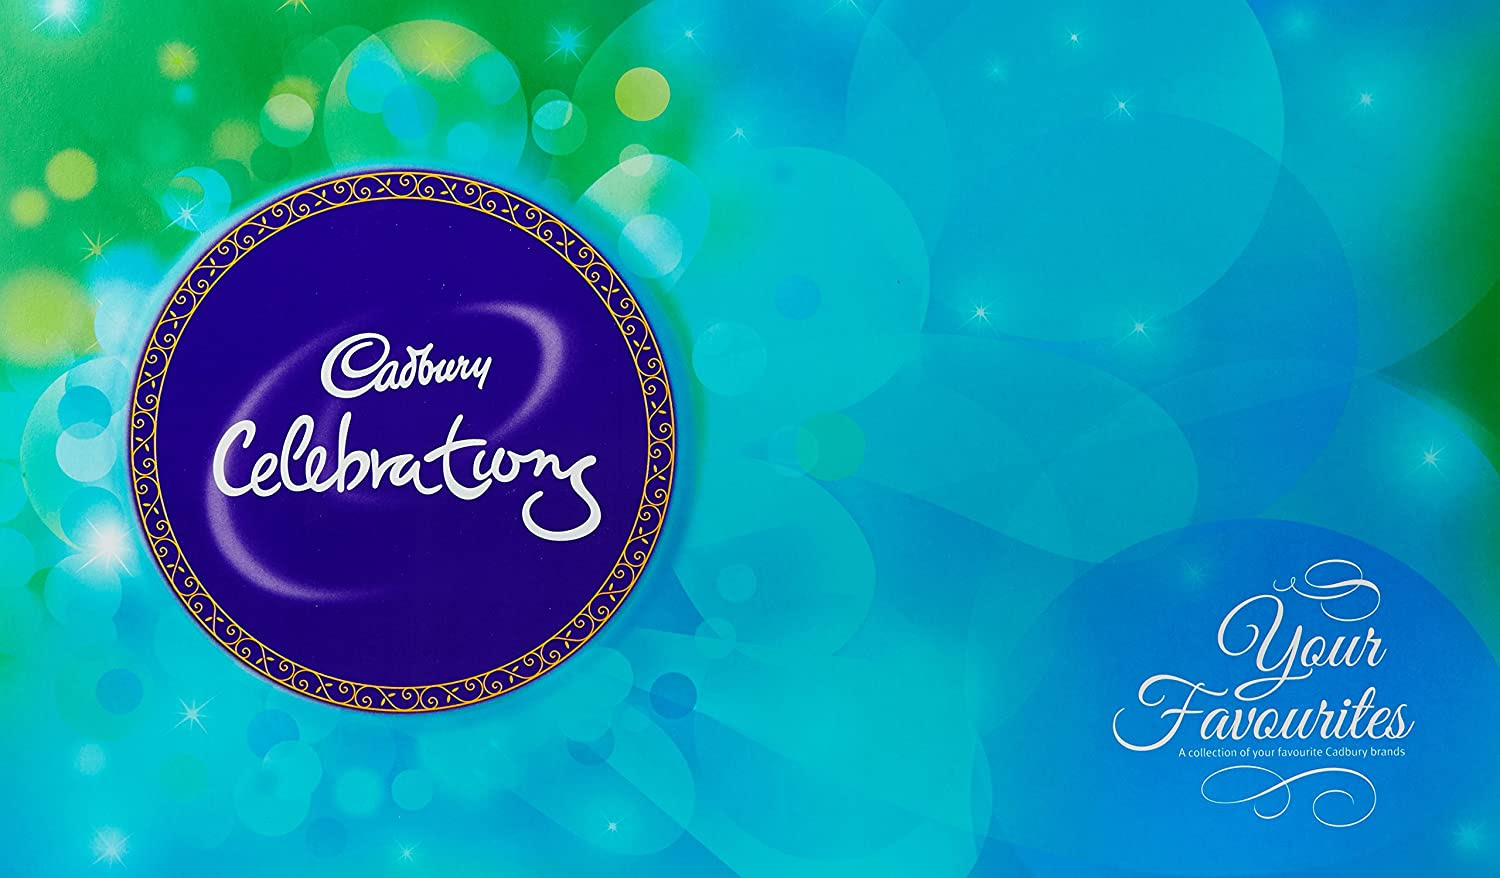 deals on Cadbury Celebration, 199g